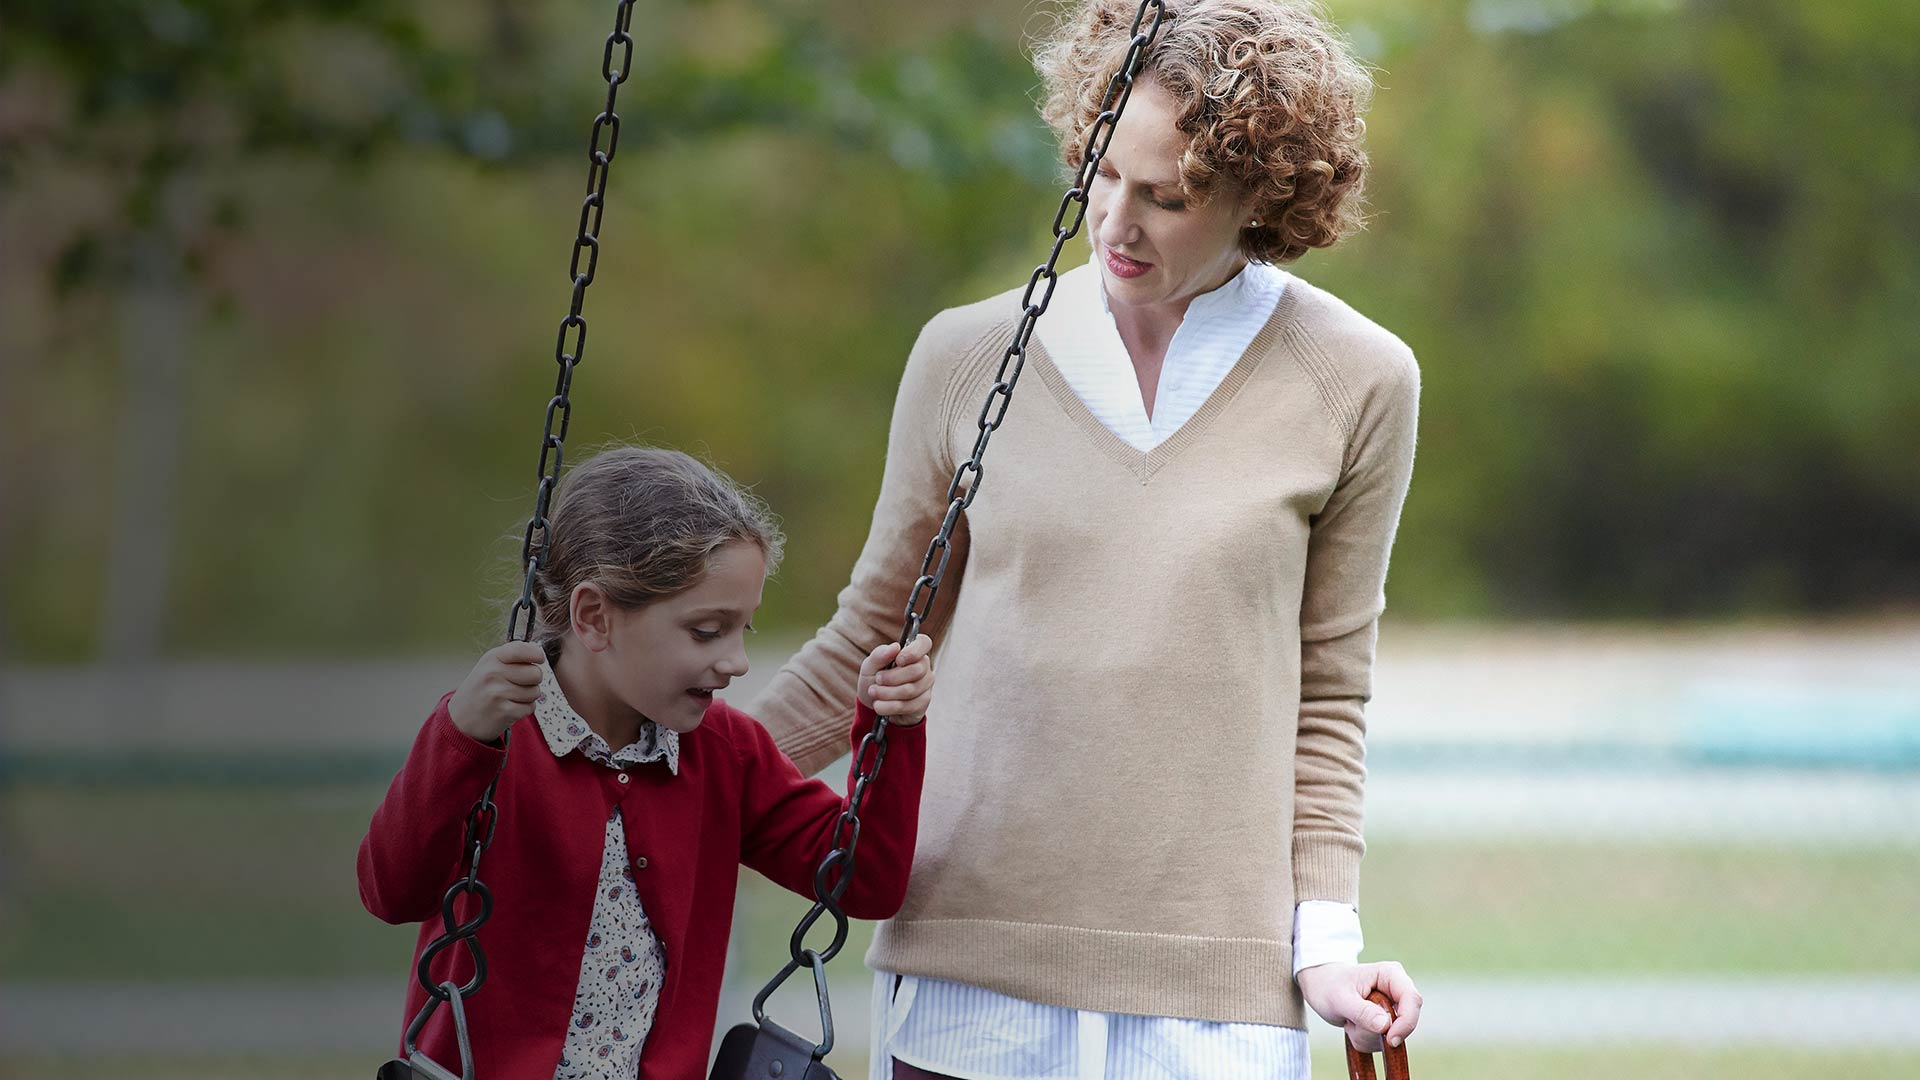 Illnesses that affect the brain can change the relationship between a mother and her daugher